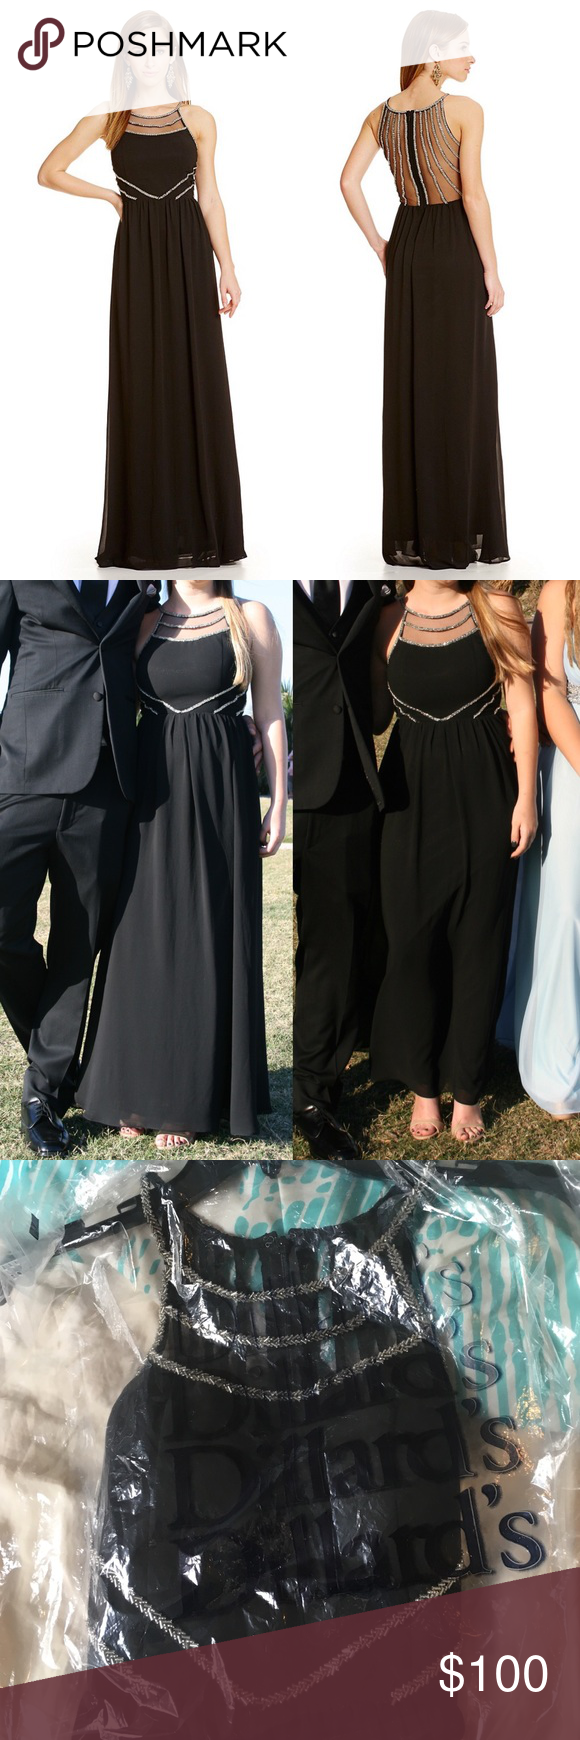 Gb tailored long black prom dress worn once u in perfect condition